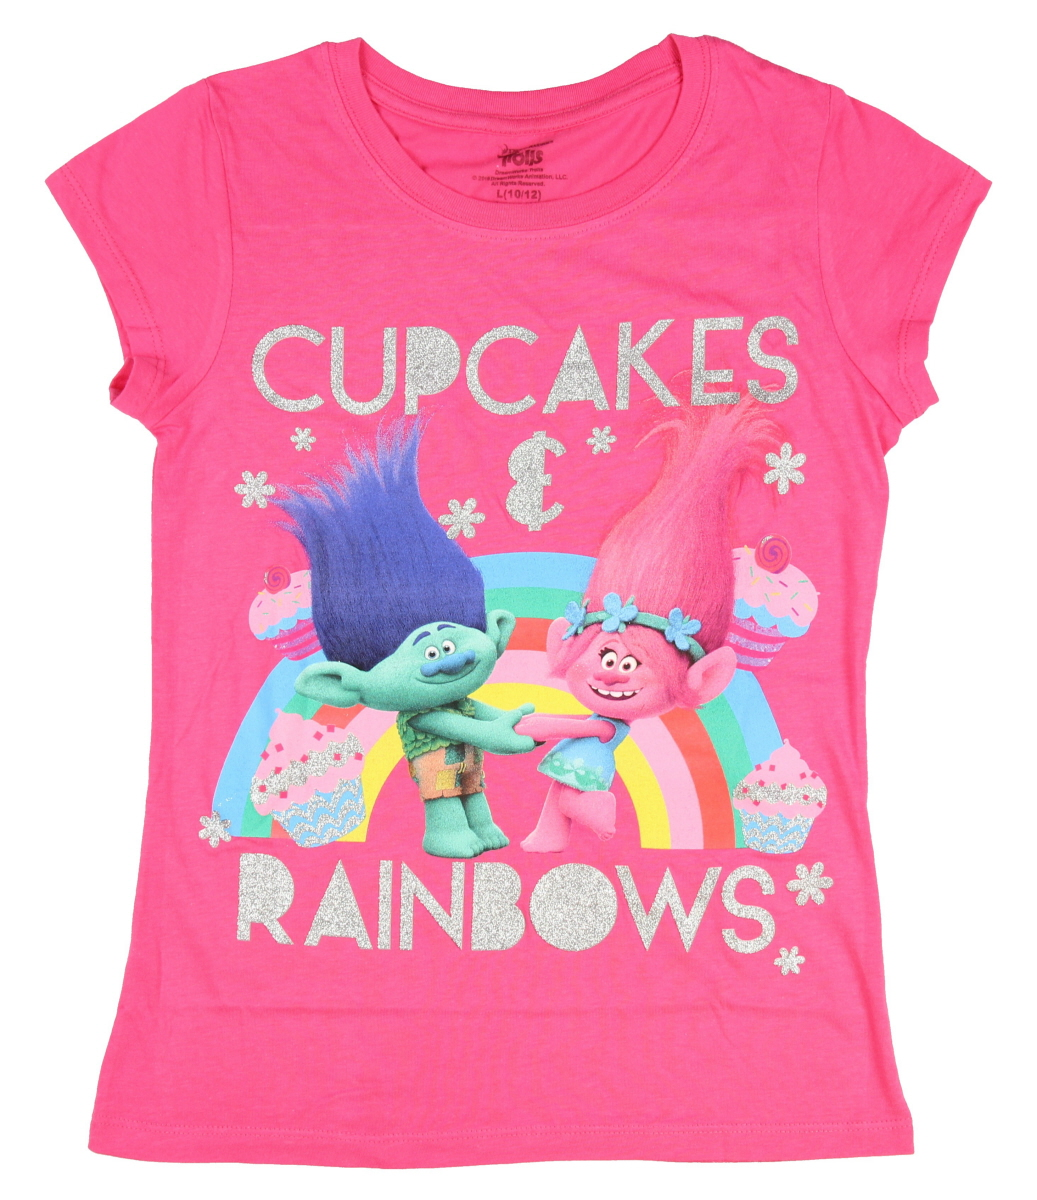 Trolls Movie Cupcakes & Rainbows Girls T-shirt - Walmart.com